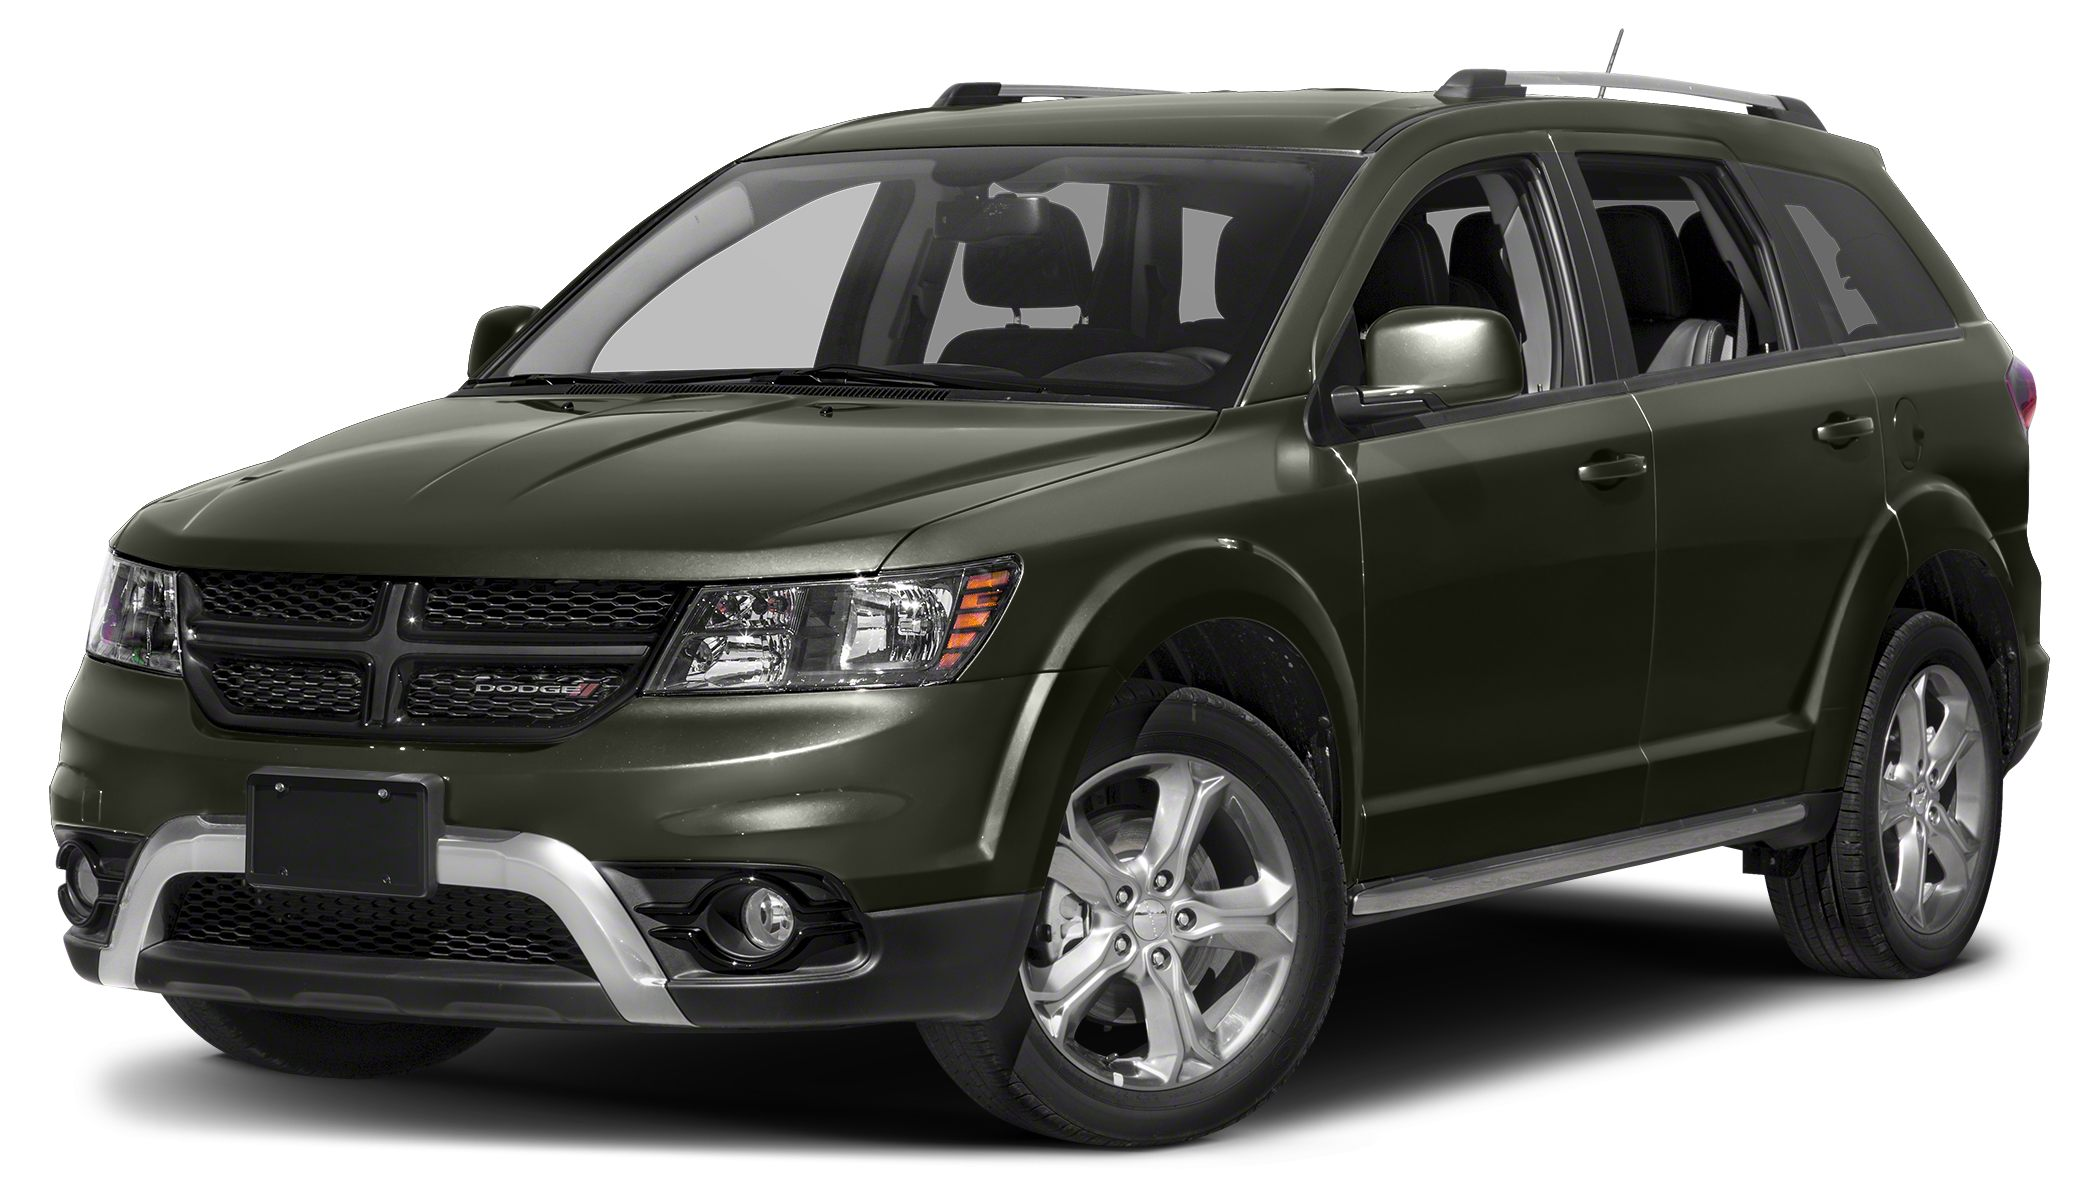 2017 Dodge Journey Crossroad The Our Cost Price reflects all applicable manufacturer rebates and p